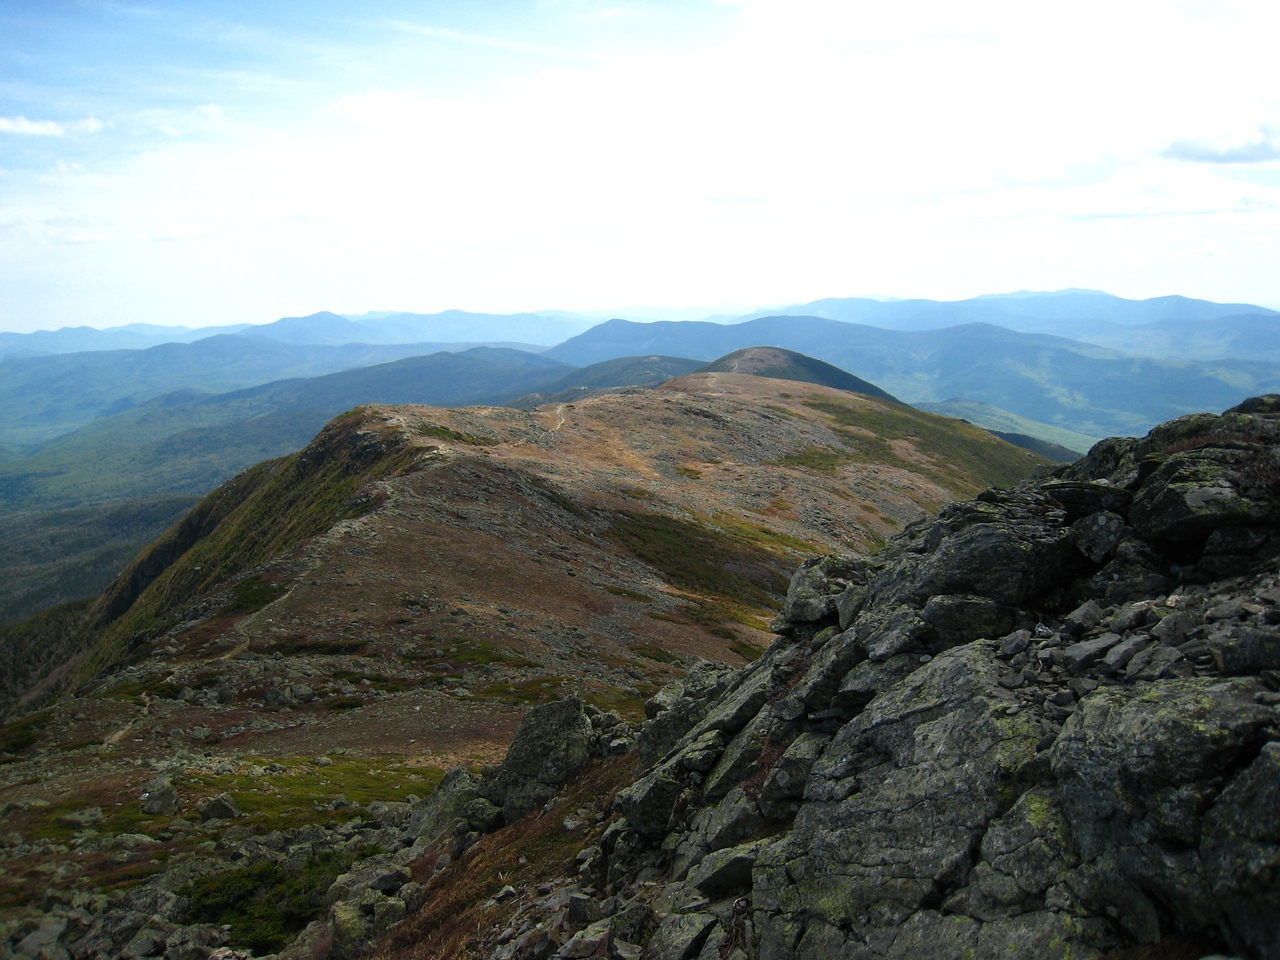 From Mt. Neon, 4